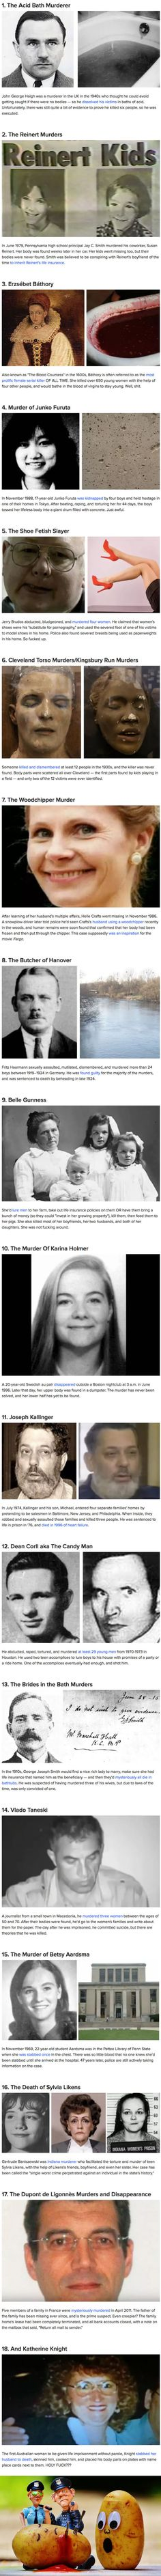 18 creepy murder cases will give you shivers down the spine